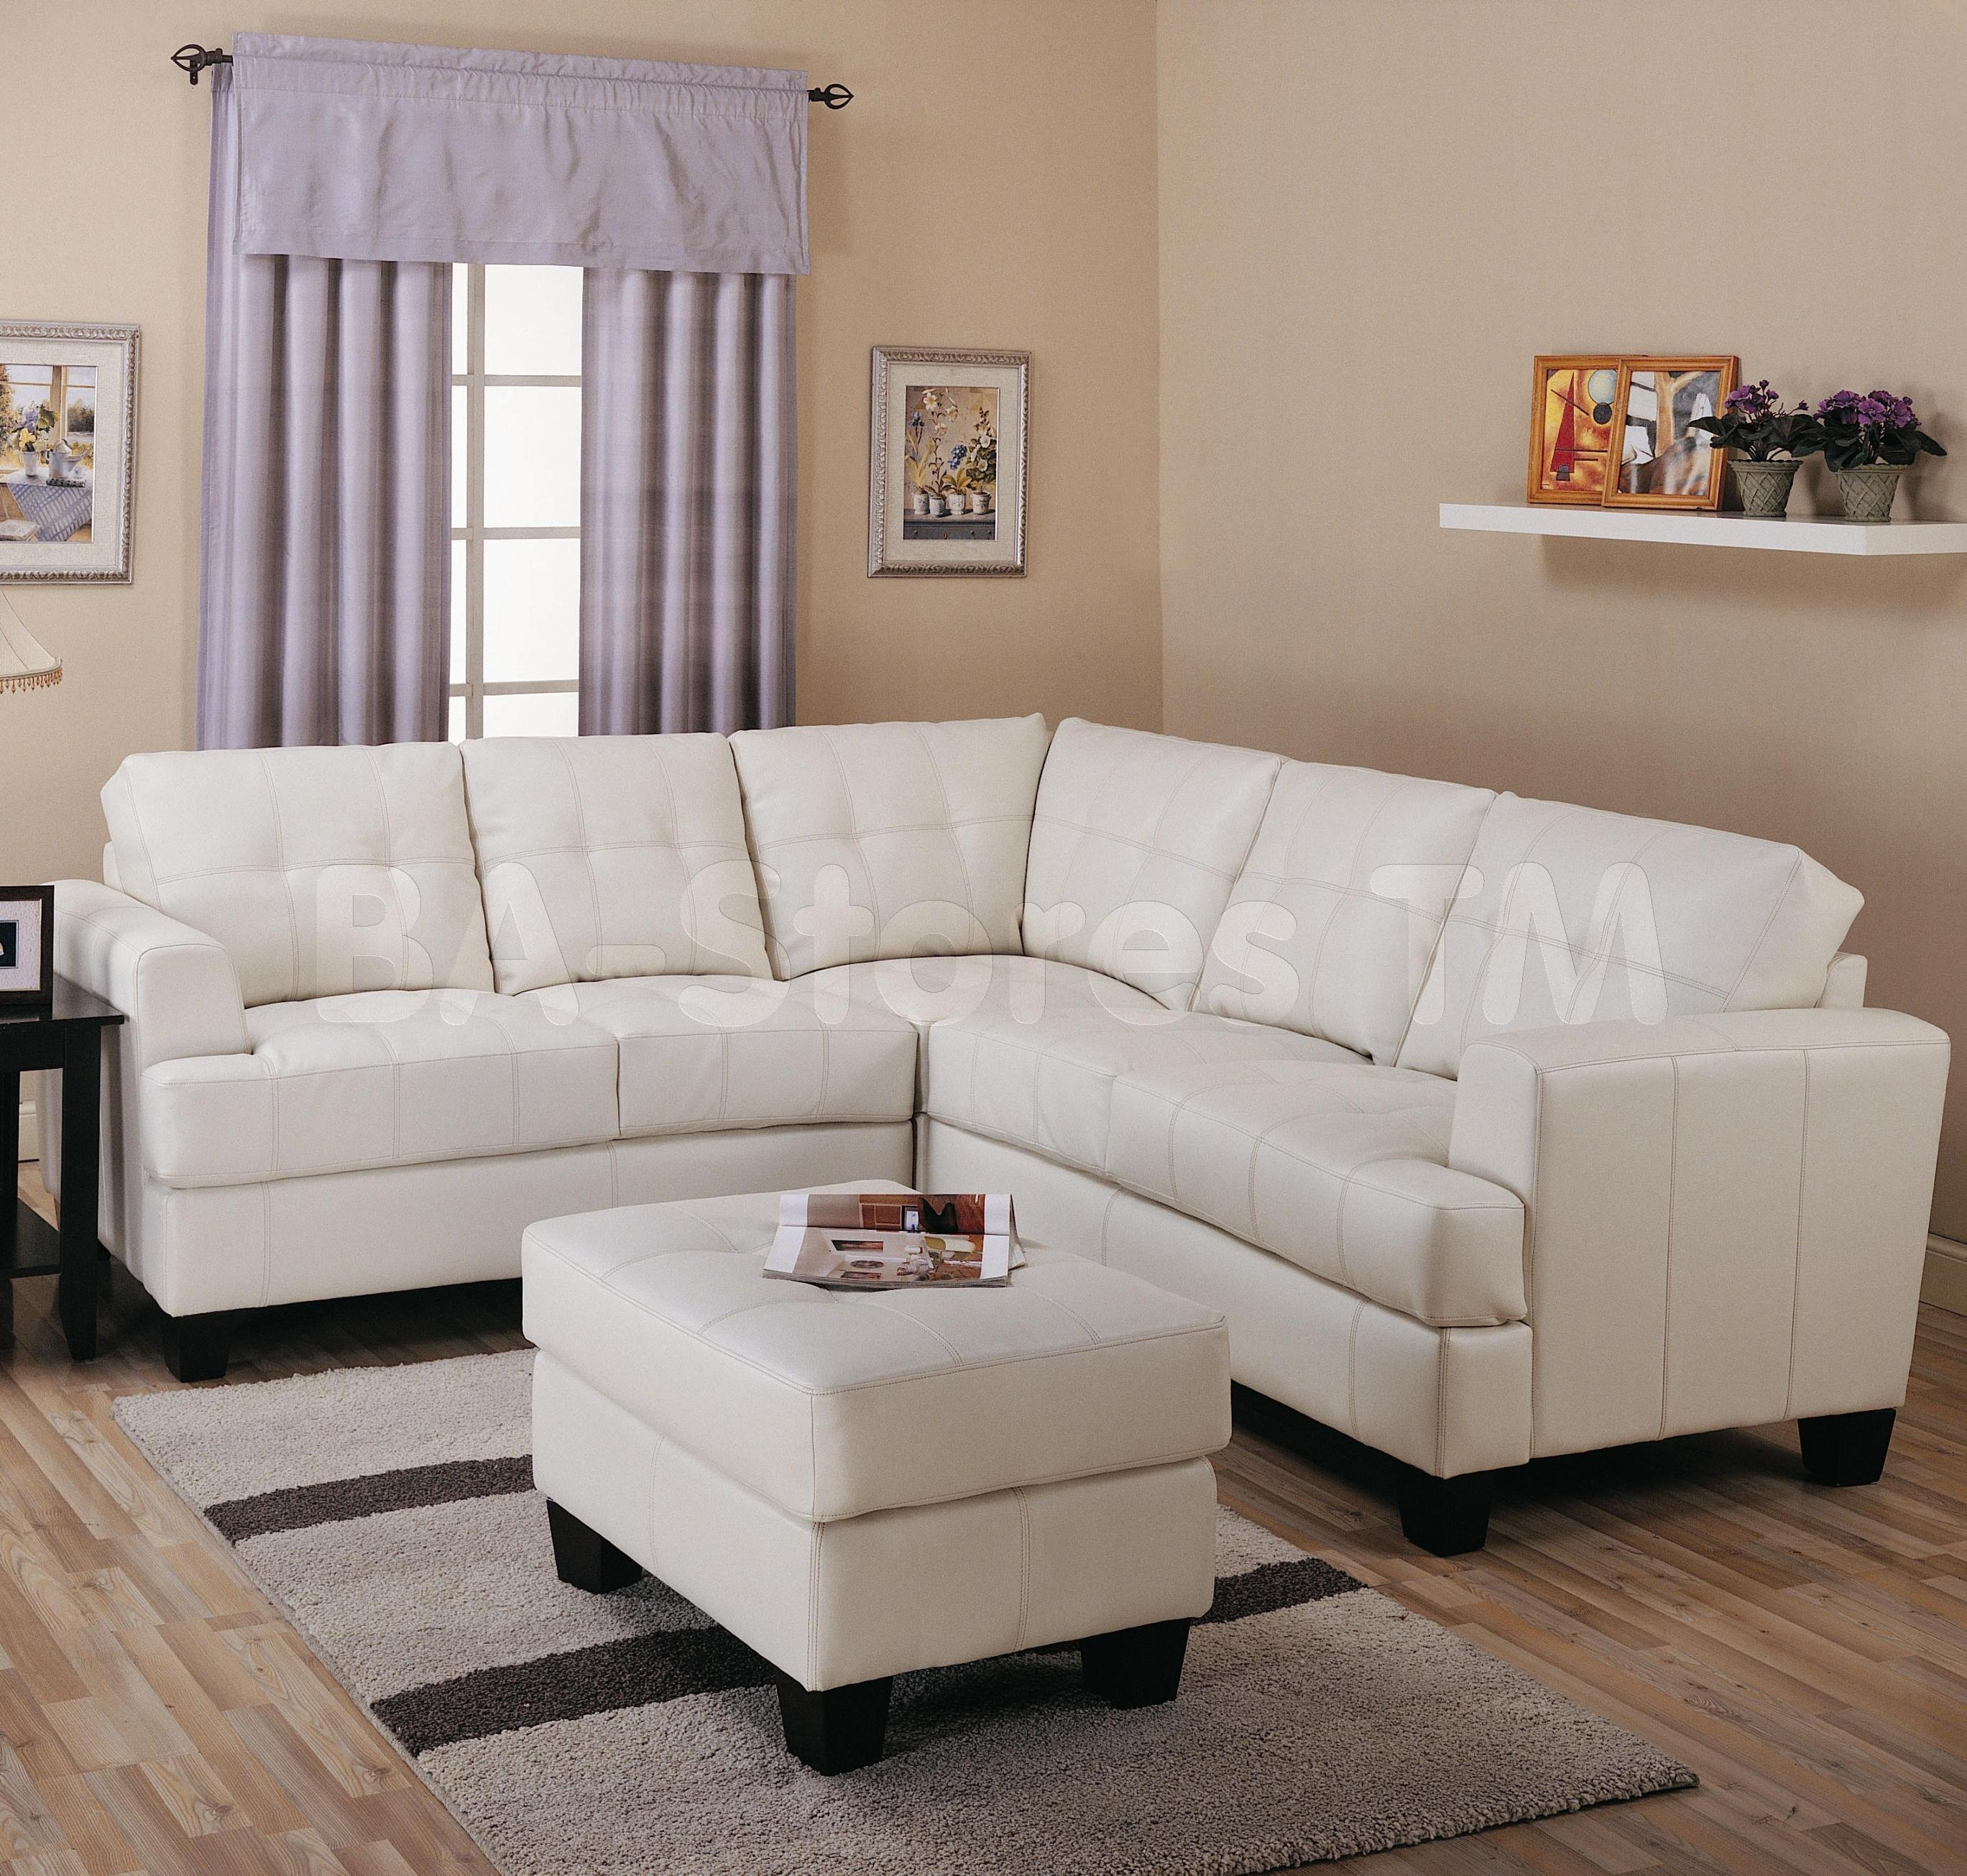 Furniture : Sectional Sofa $500 Recliner With Lift Corner Couch Intended For Jamaica Sectional Sofas (Image 1 of 10)